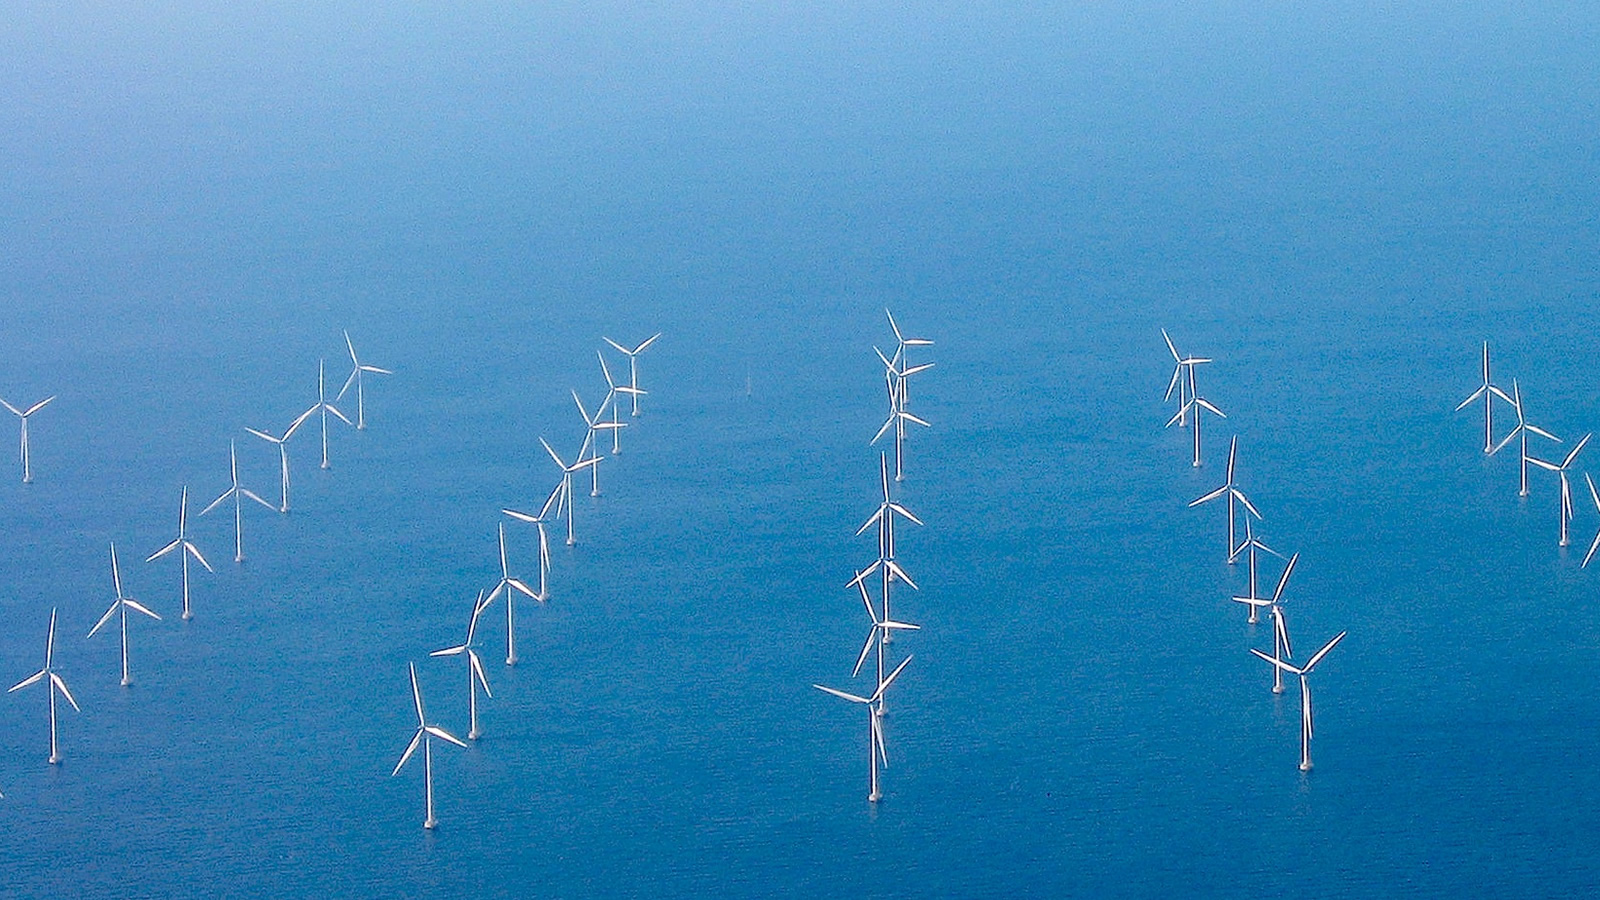 <h4>State commitments on the rise</h4><h5>State leaders along the Atlantic coast have already committed to nearly 25,000 MW of offshore wind by 2035 — enough to power more than twelve million homes.</h5><em>Kinolamp via Flickr CC BY-SA 2.0</em>